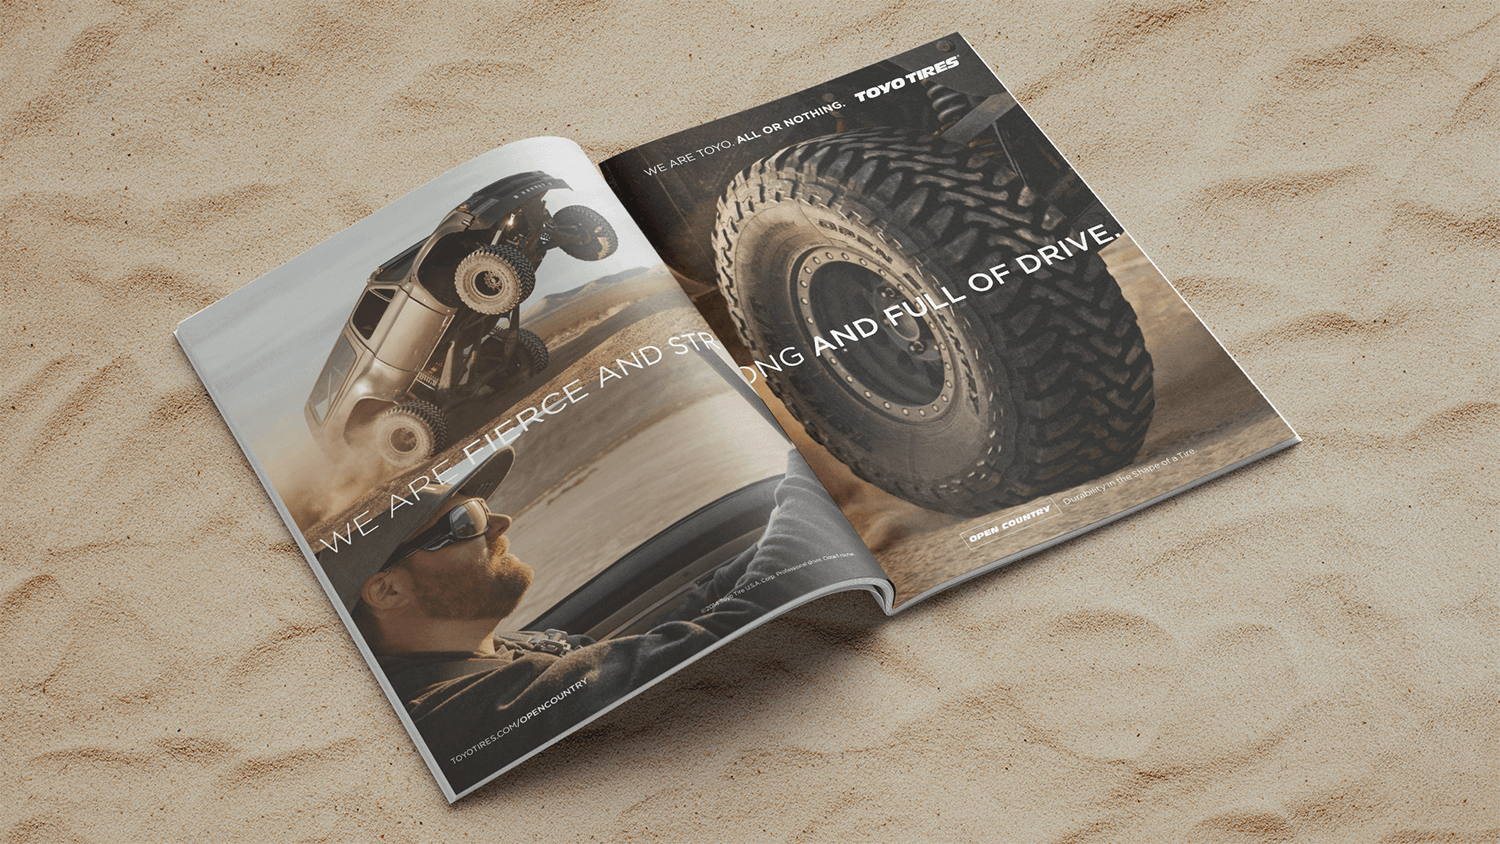 Magazine ad spread featuring Toyo Tires on a baja truck